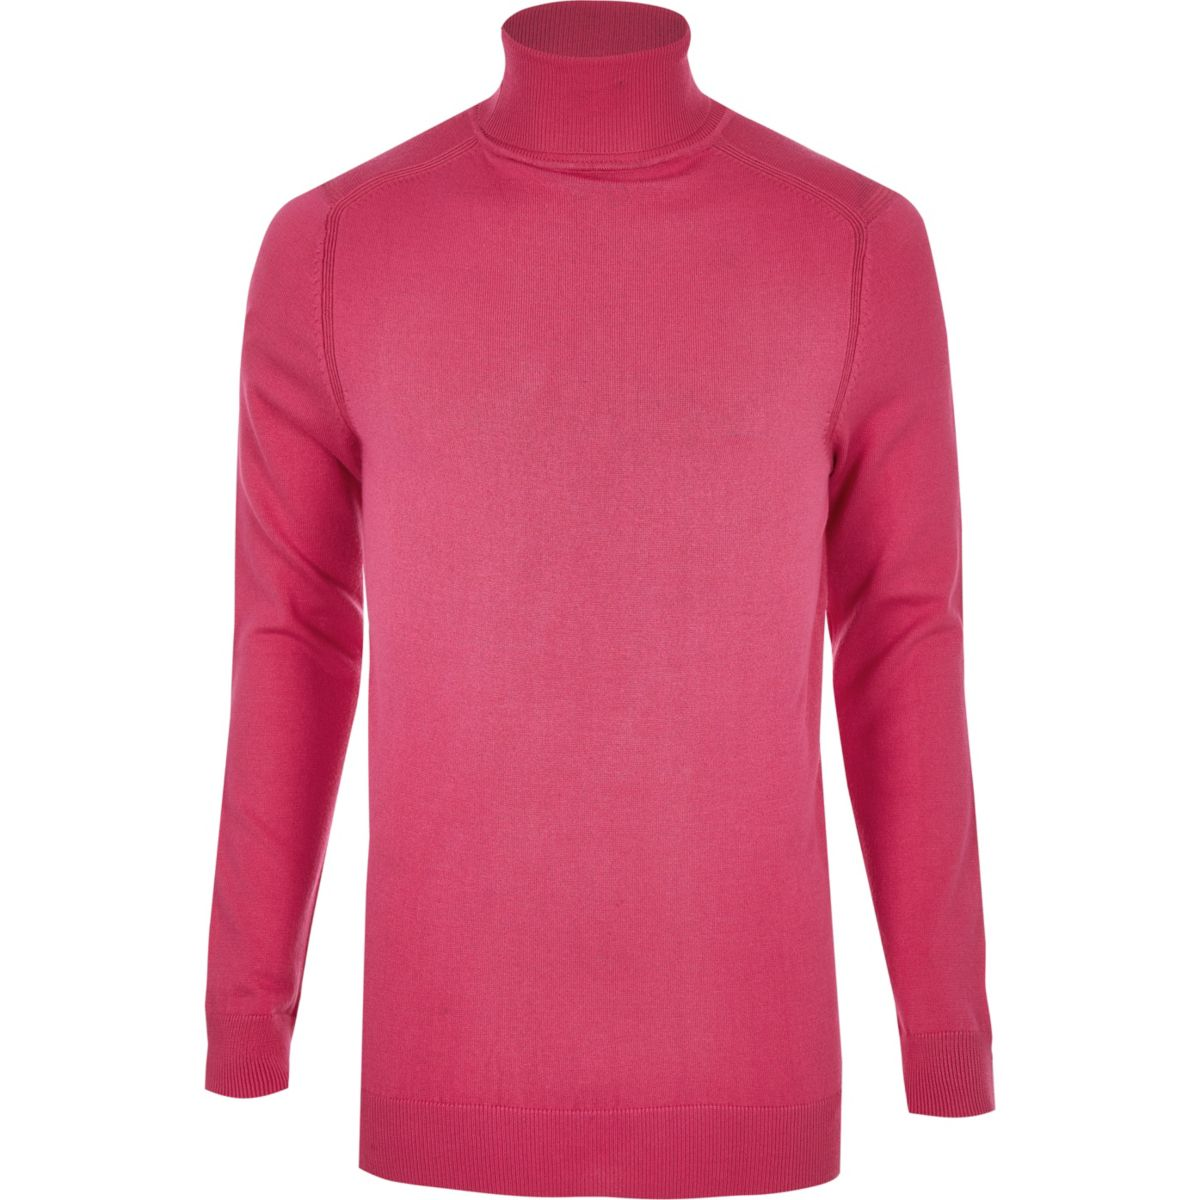 Bright pink slim fit roll neck sweater